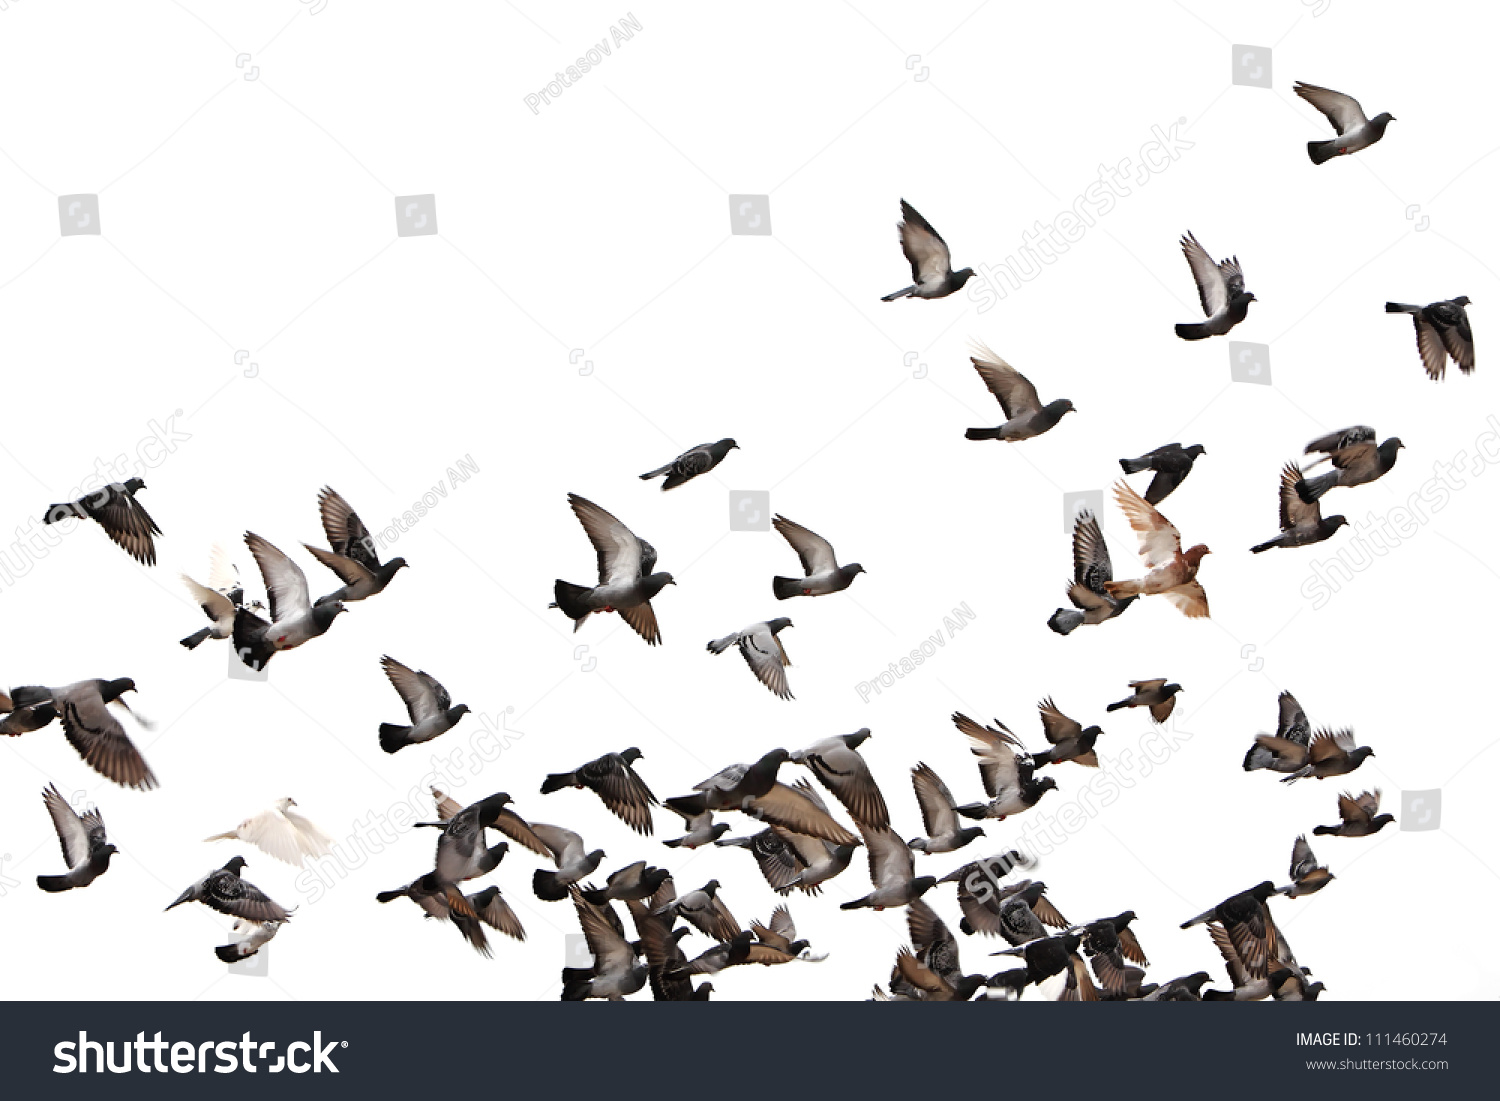 Flying Pigeons Flock Flight Birds Free 111460274